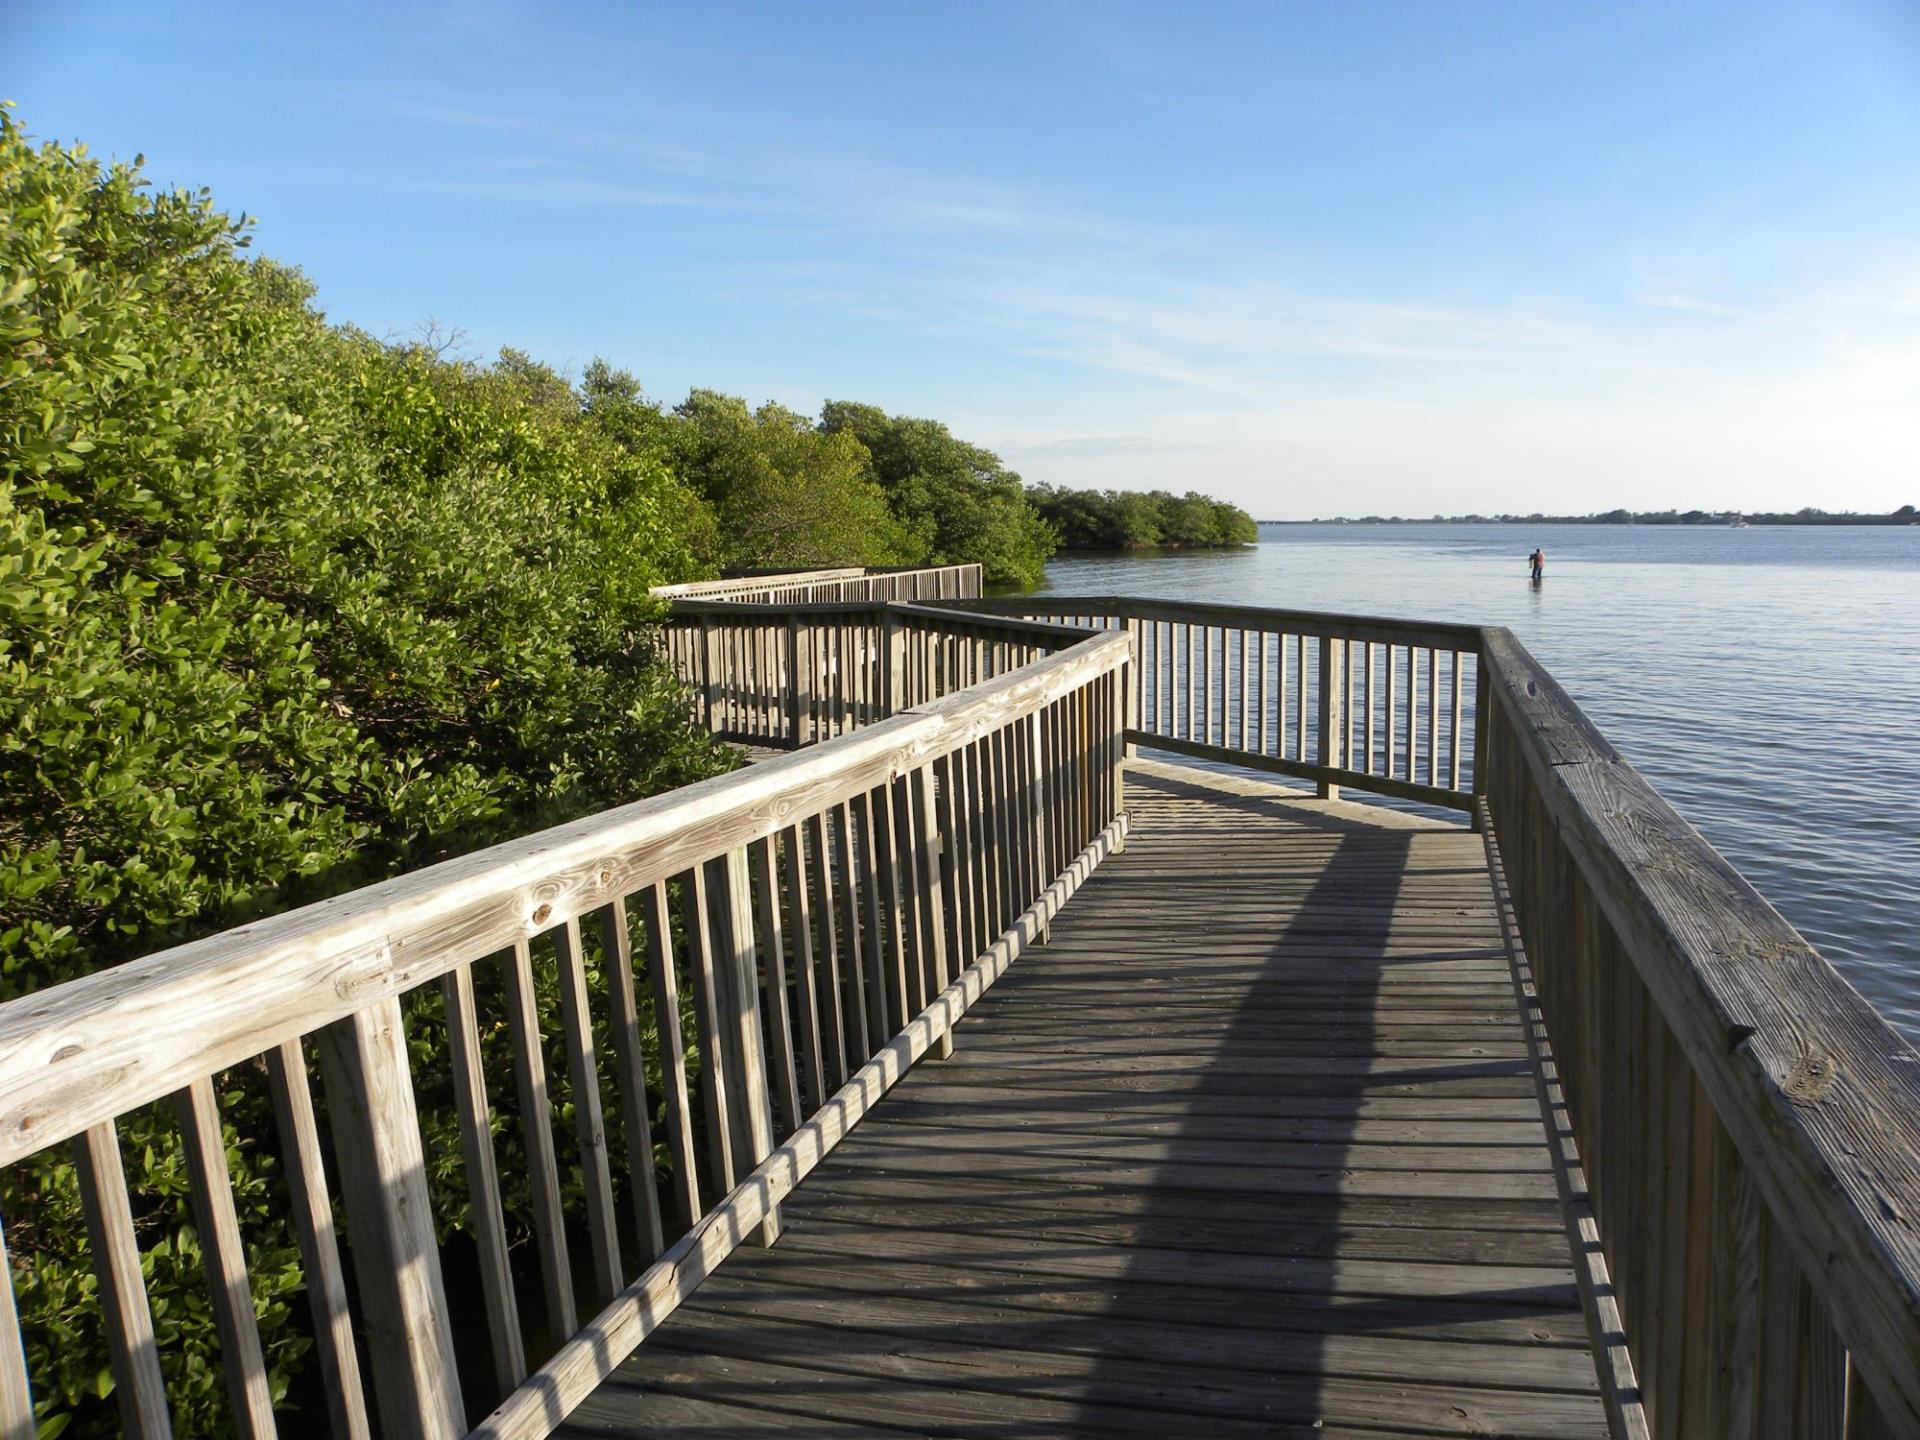 Lemon Bay Park and Environmental Center